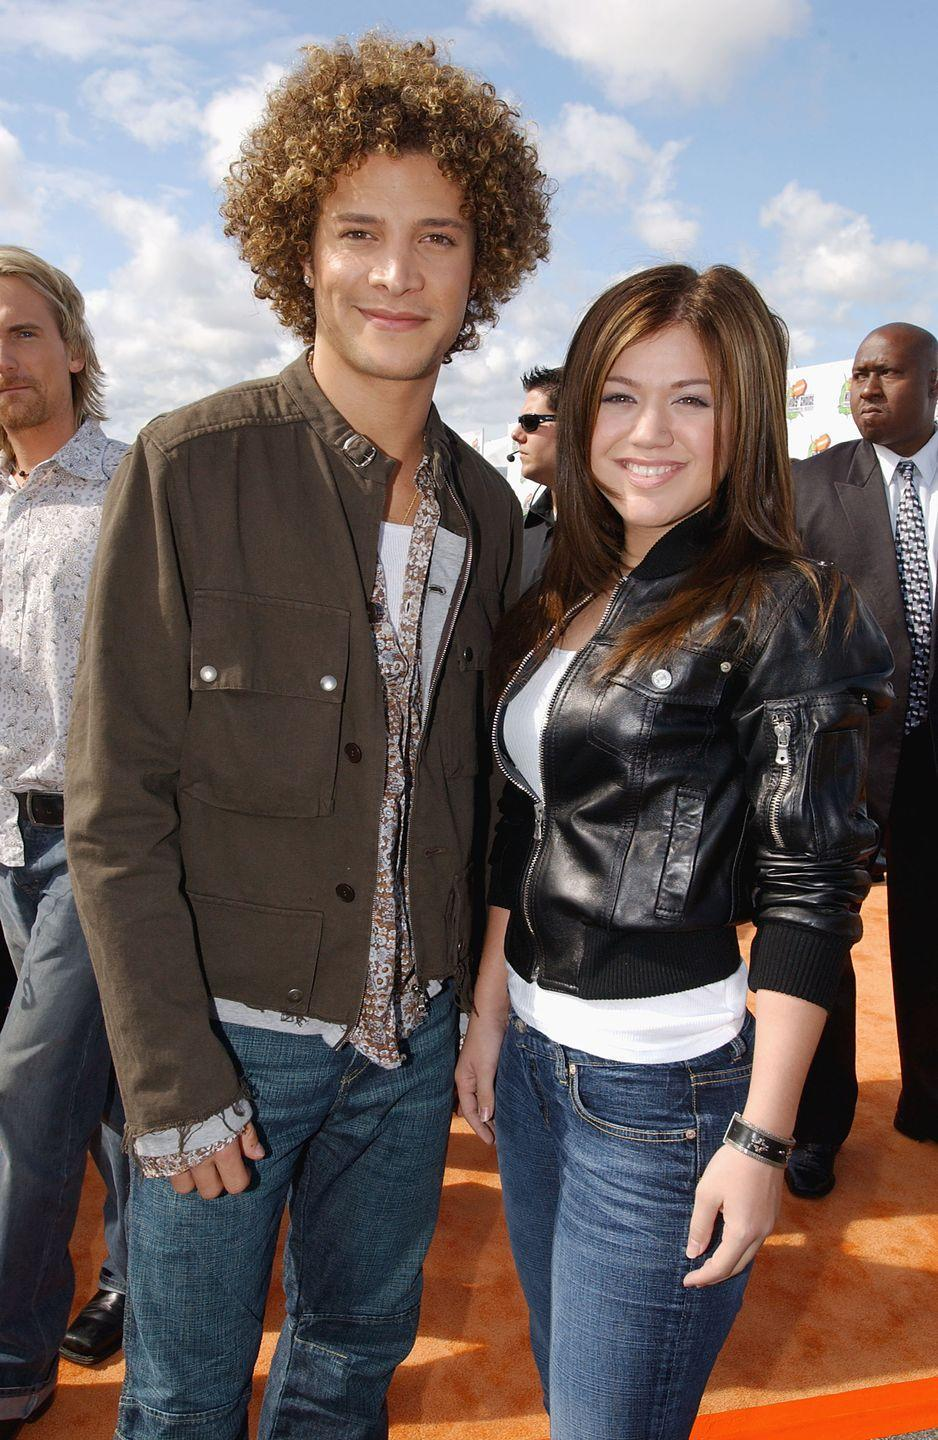 <p>The <em>American Idol</em> finalists never lost their next door charm. After Clarkson was crowned as the first American Idol, the duo starred in the movie <em>From Justin to Kelly,</em> which is an underrated classic and no, that is not up for debate!!</p>